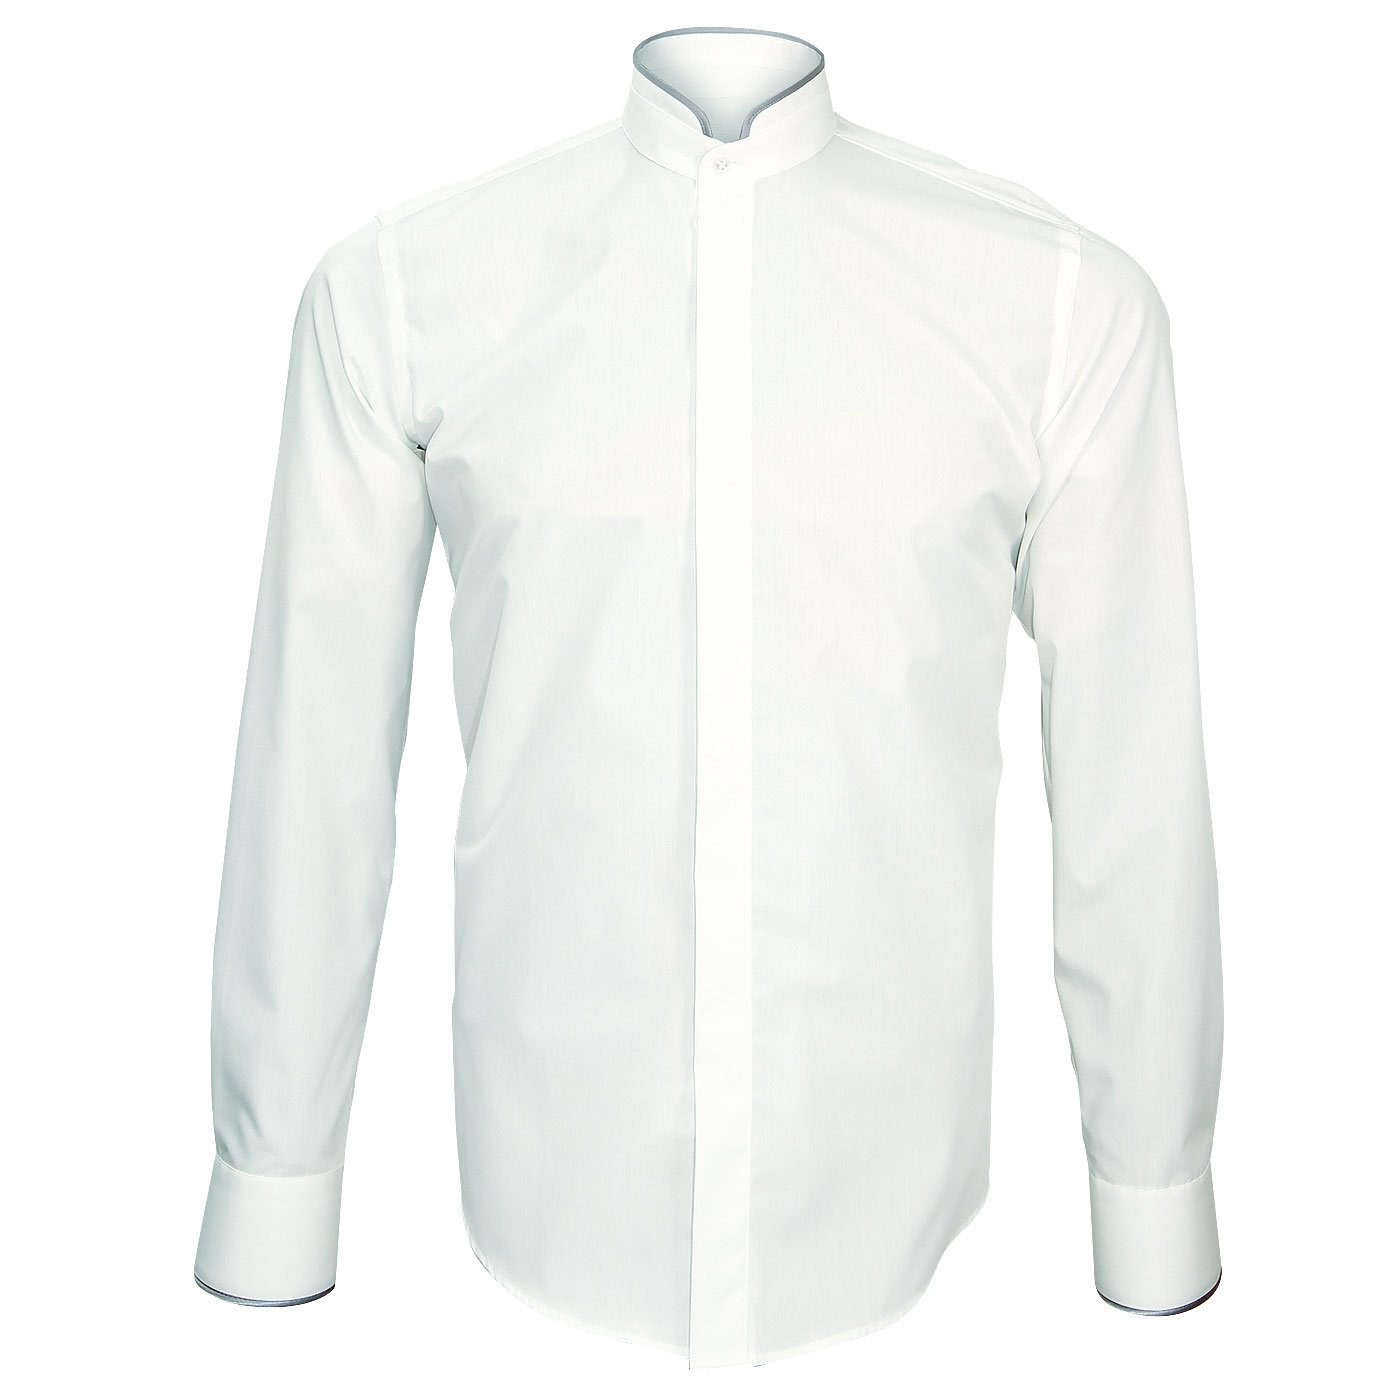 Turtle collar dress shirt